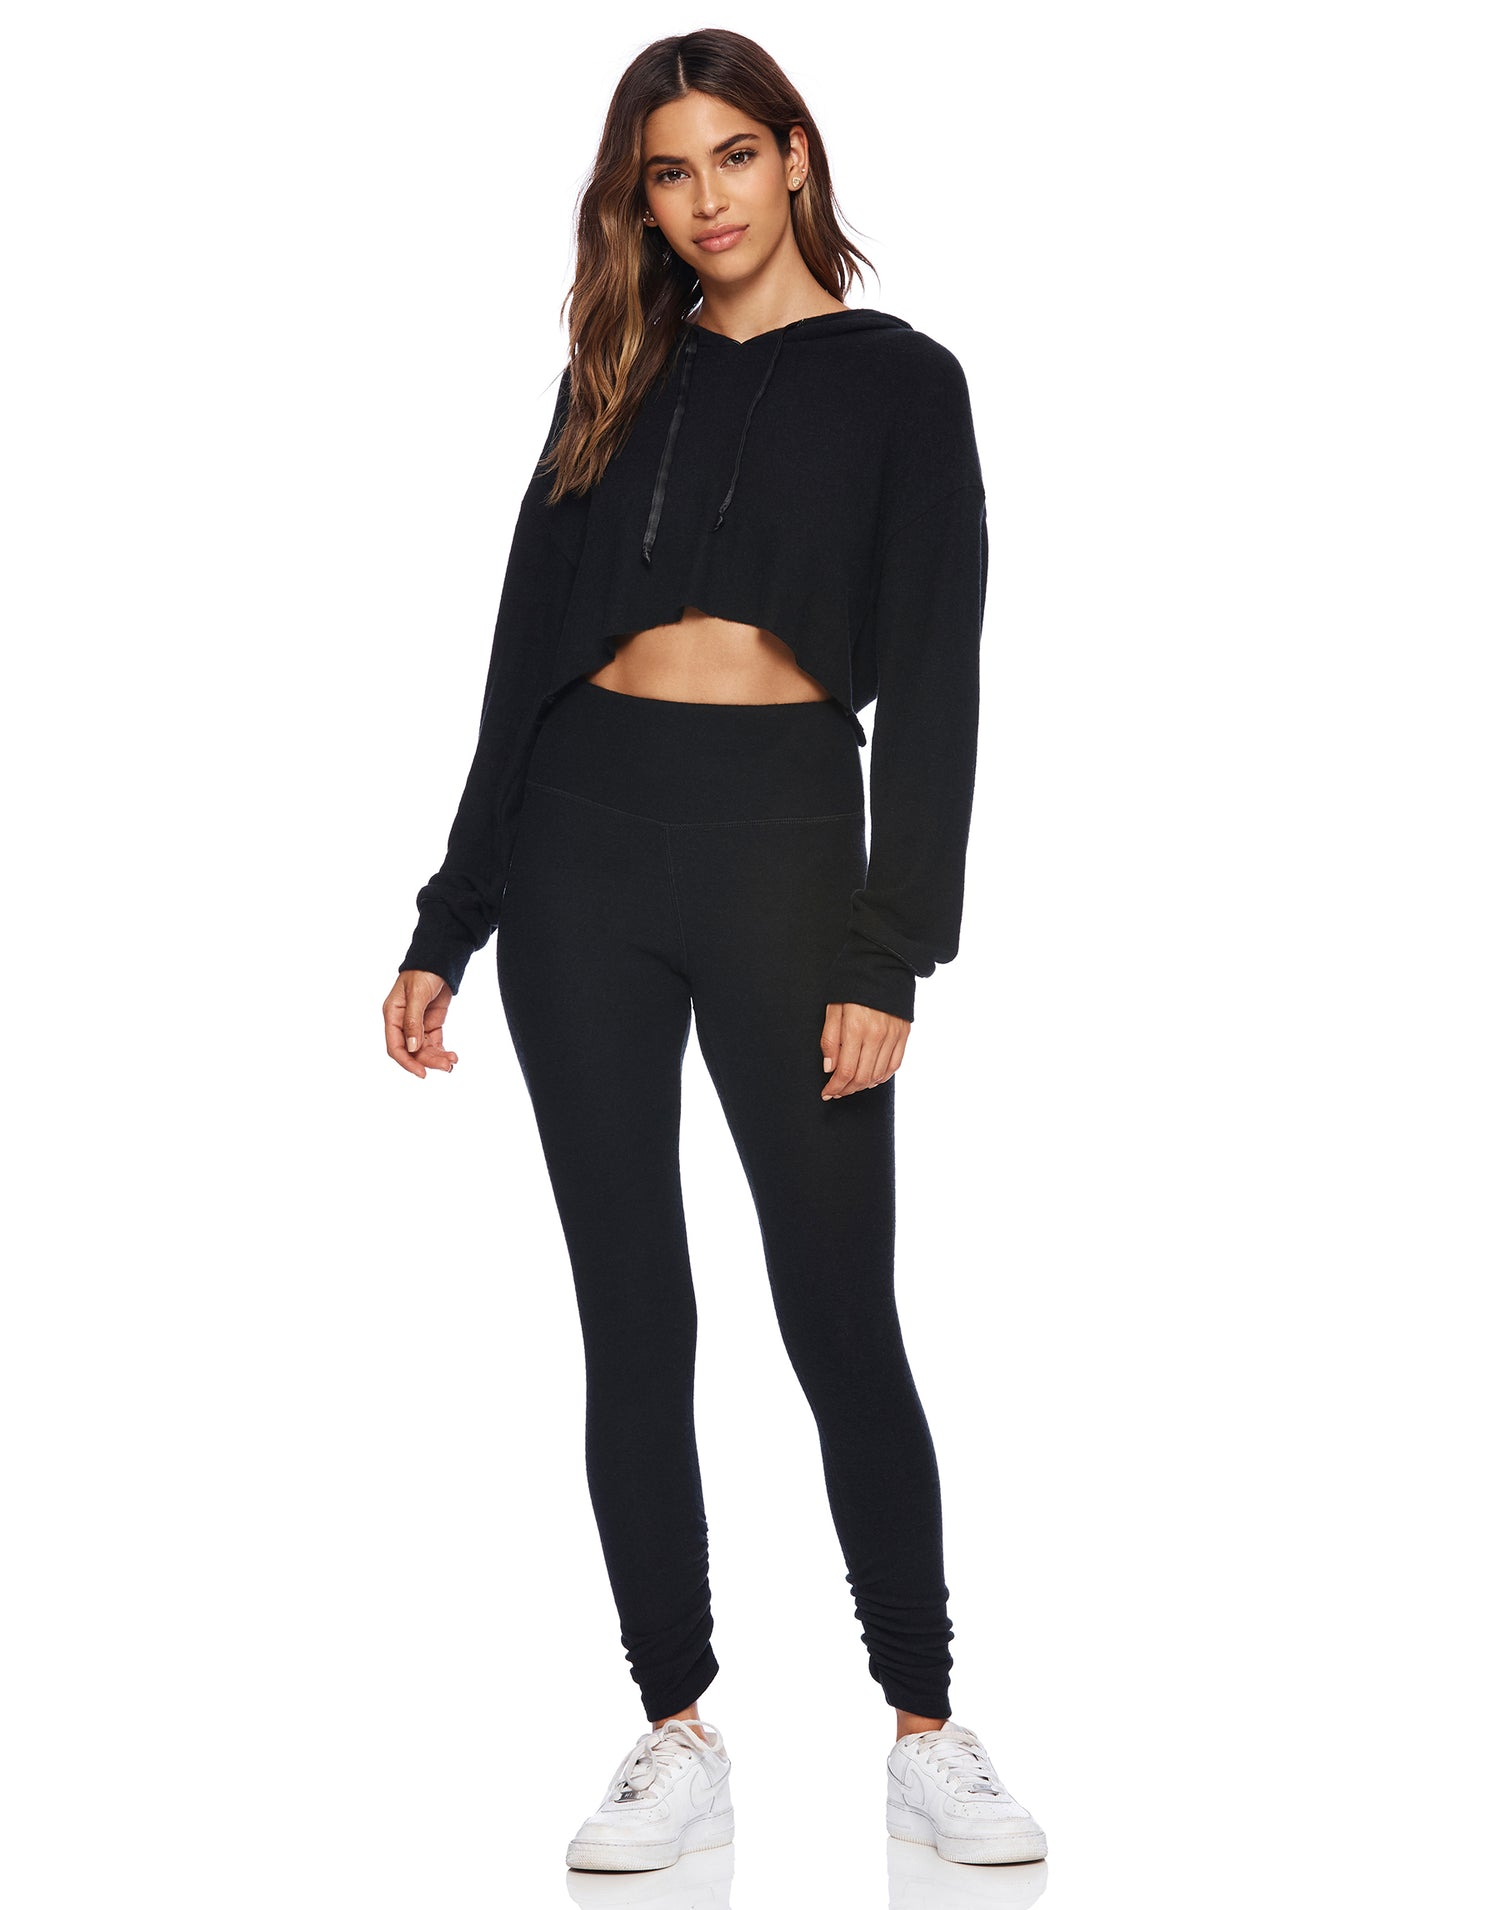 Josie Crop Hoodie in Black - alternate front view